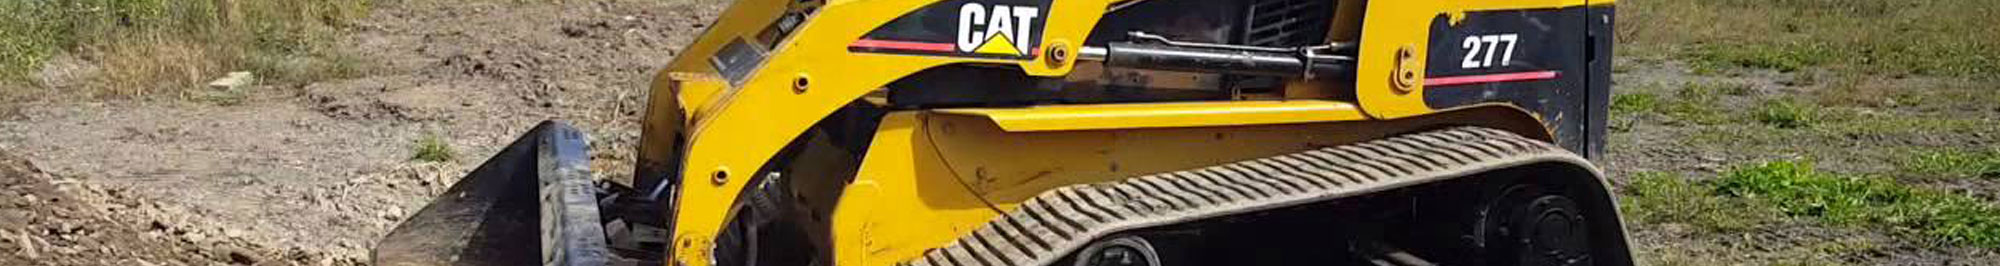 Caterpillar Skid Steer Final Drive Replacement Parts